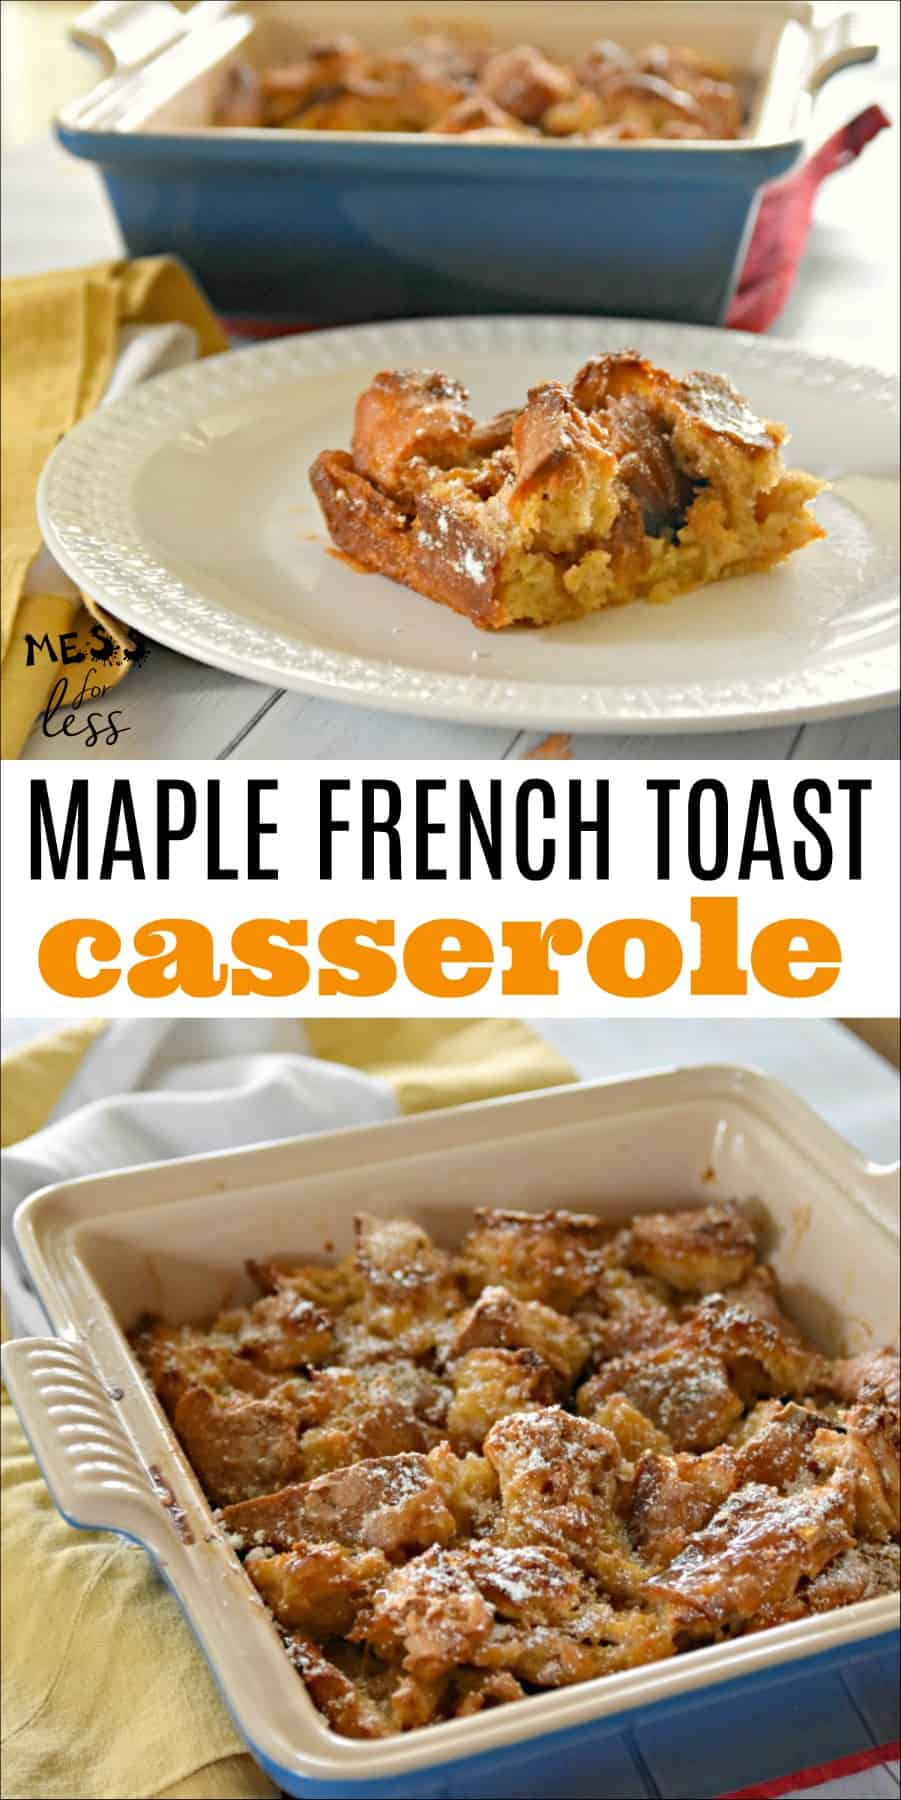 if you are looking for an easy recipe for a delicious breakfast that the whole family will love, whether it's the holiday season or any day of the week, you must try this Maple French Toast Casserole.#overnightcasserole #makeaheadcasserole #frenchtoastcasserole #frenchtoast